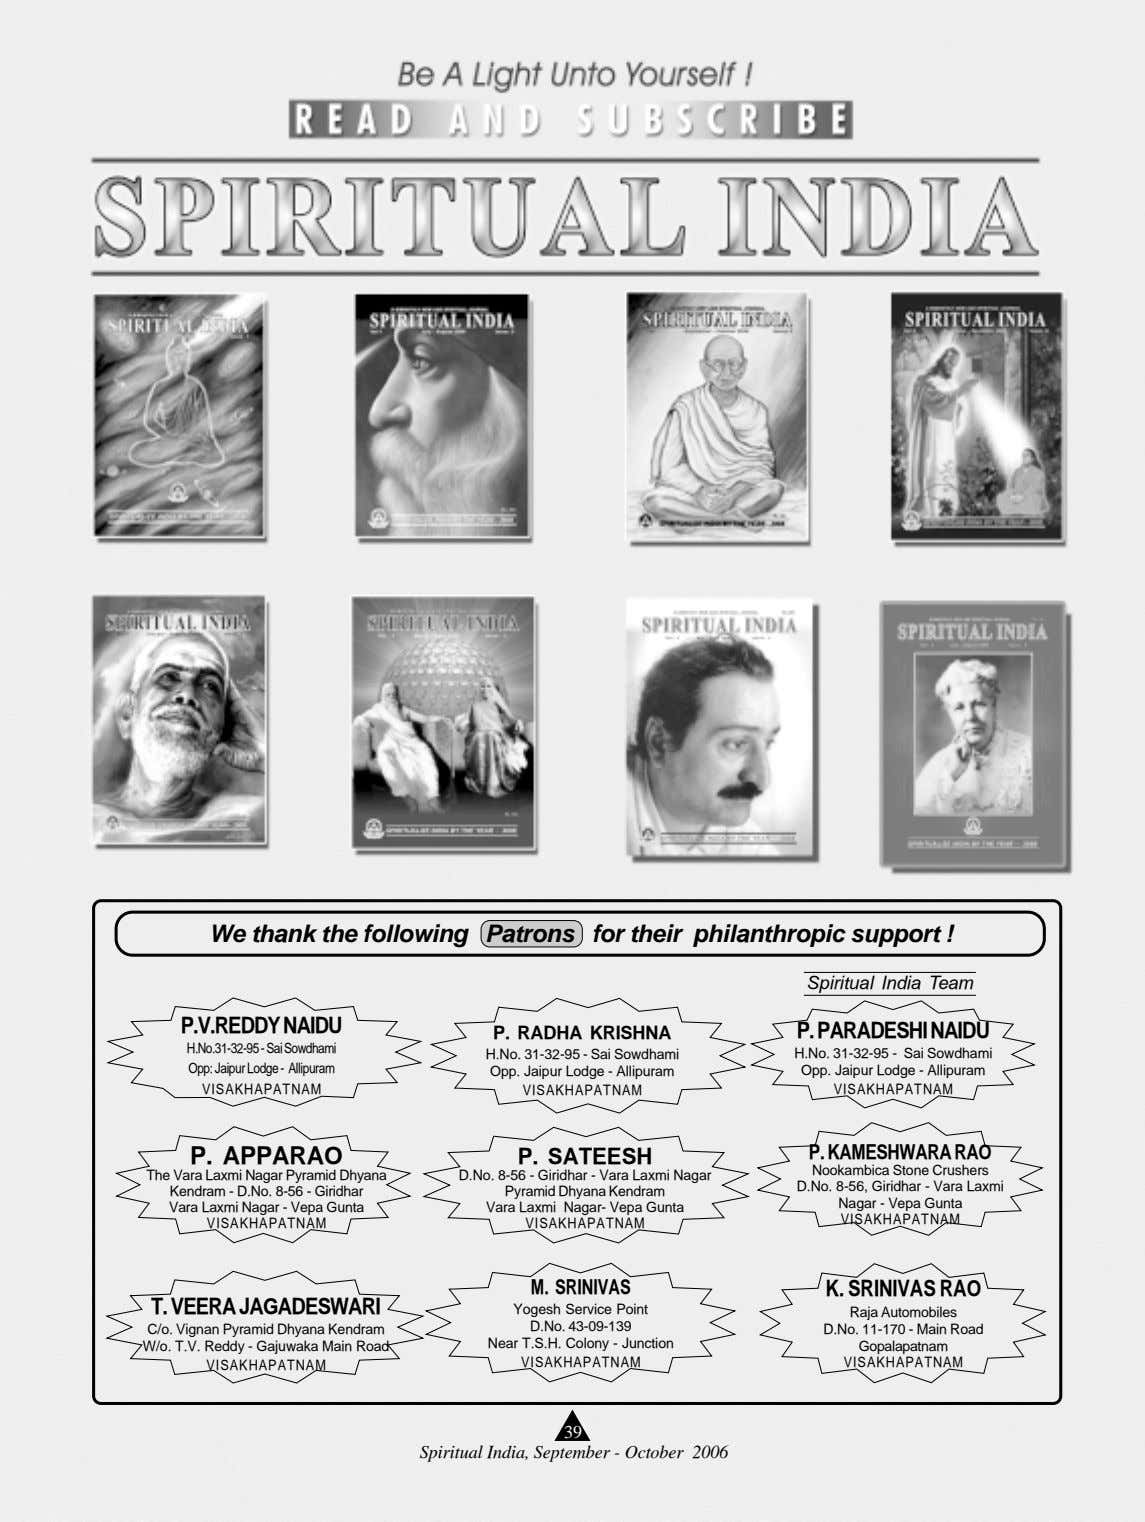 We thank the following Patrons for their philanthropic support ! Spiritual India Team P.V.REDDYNAIDU P.